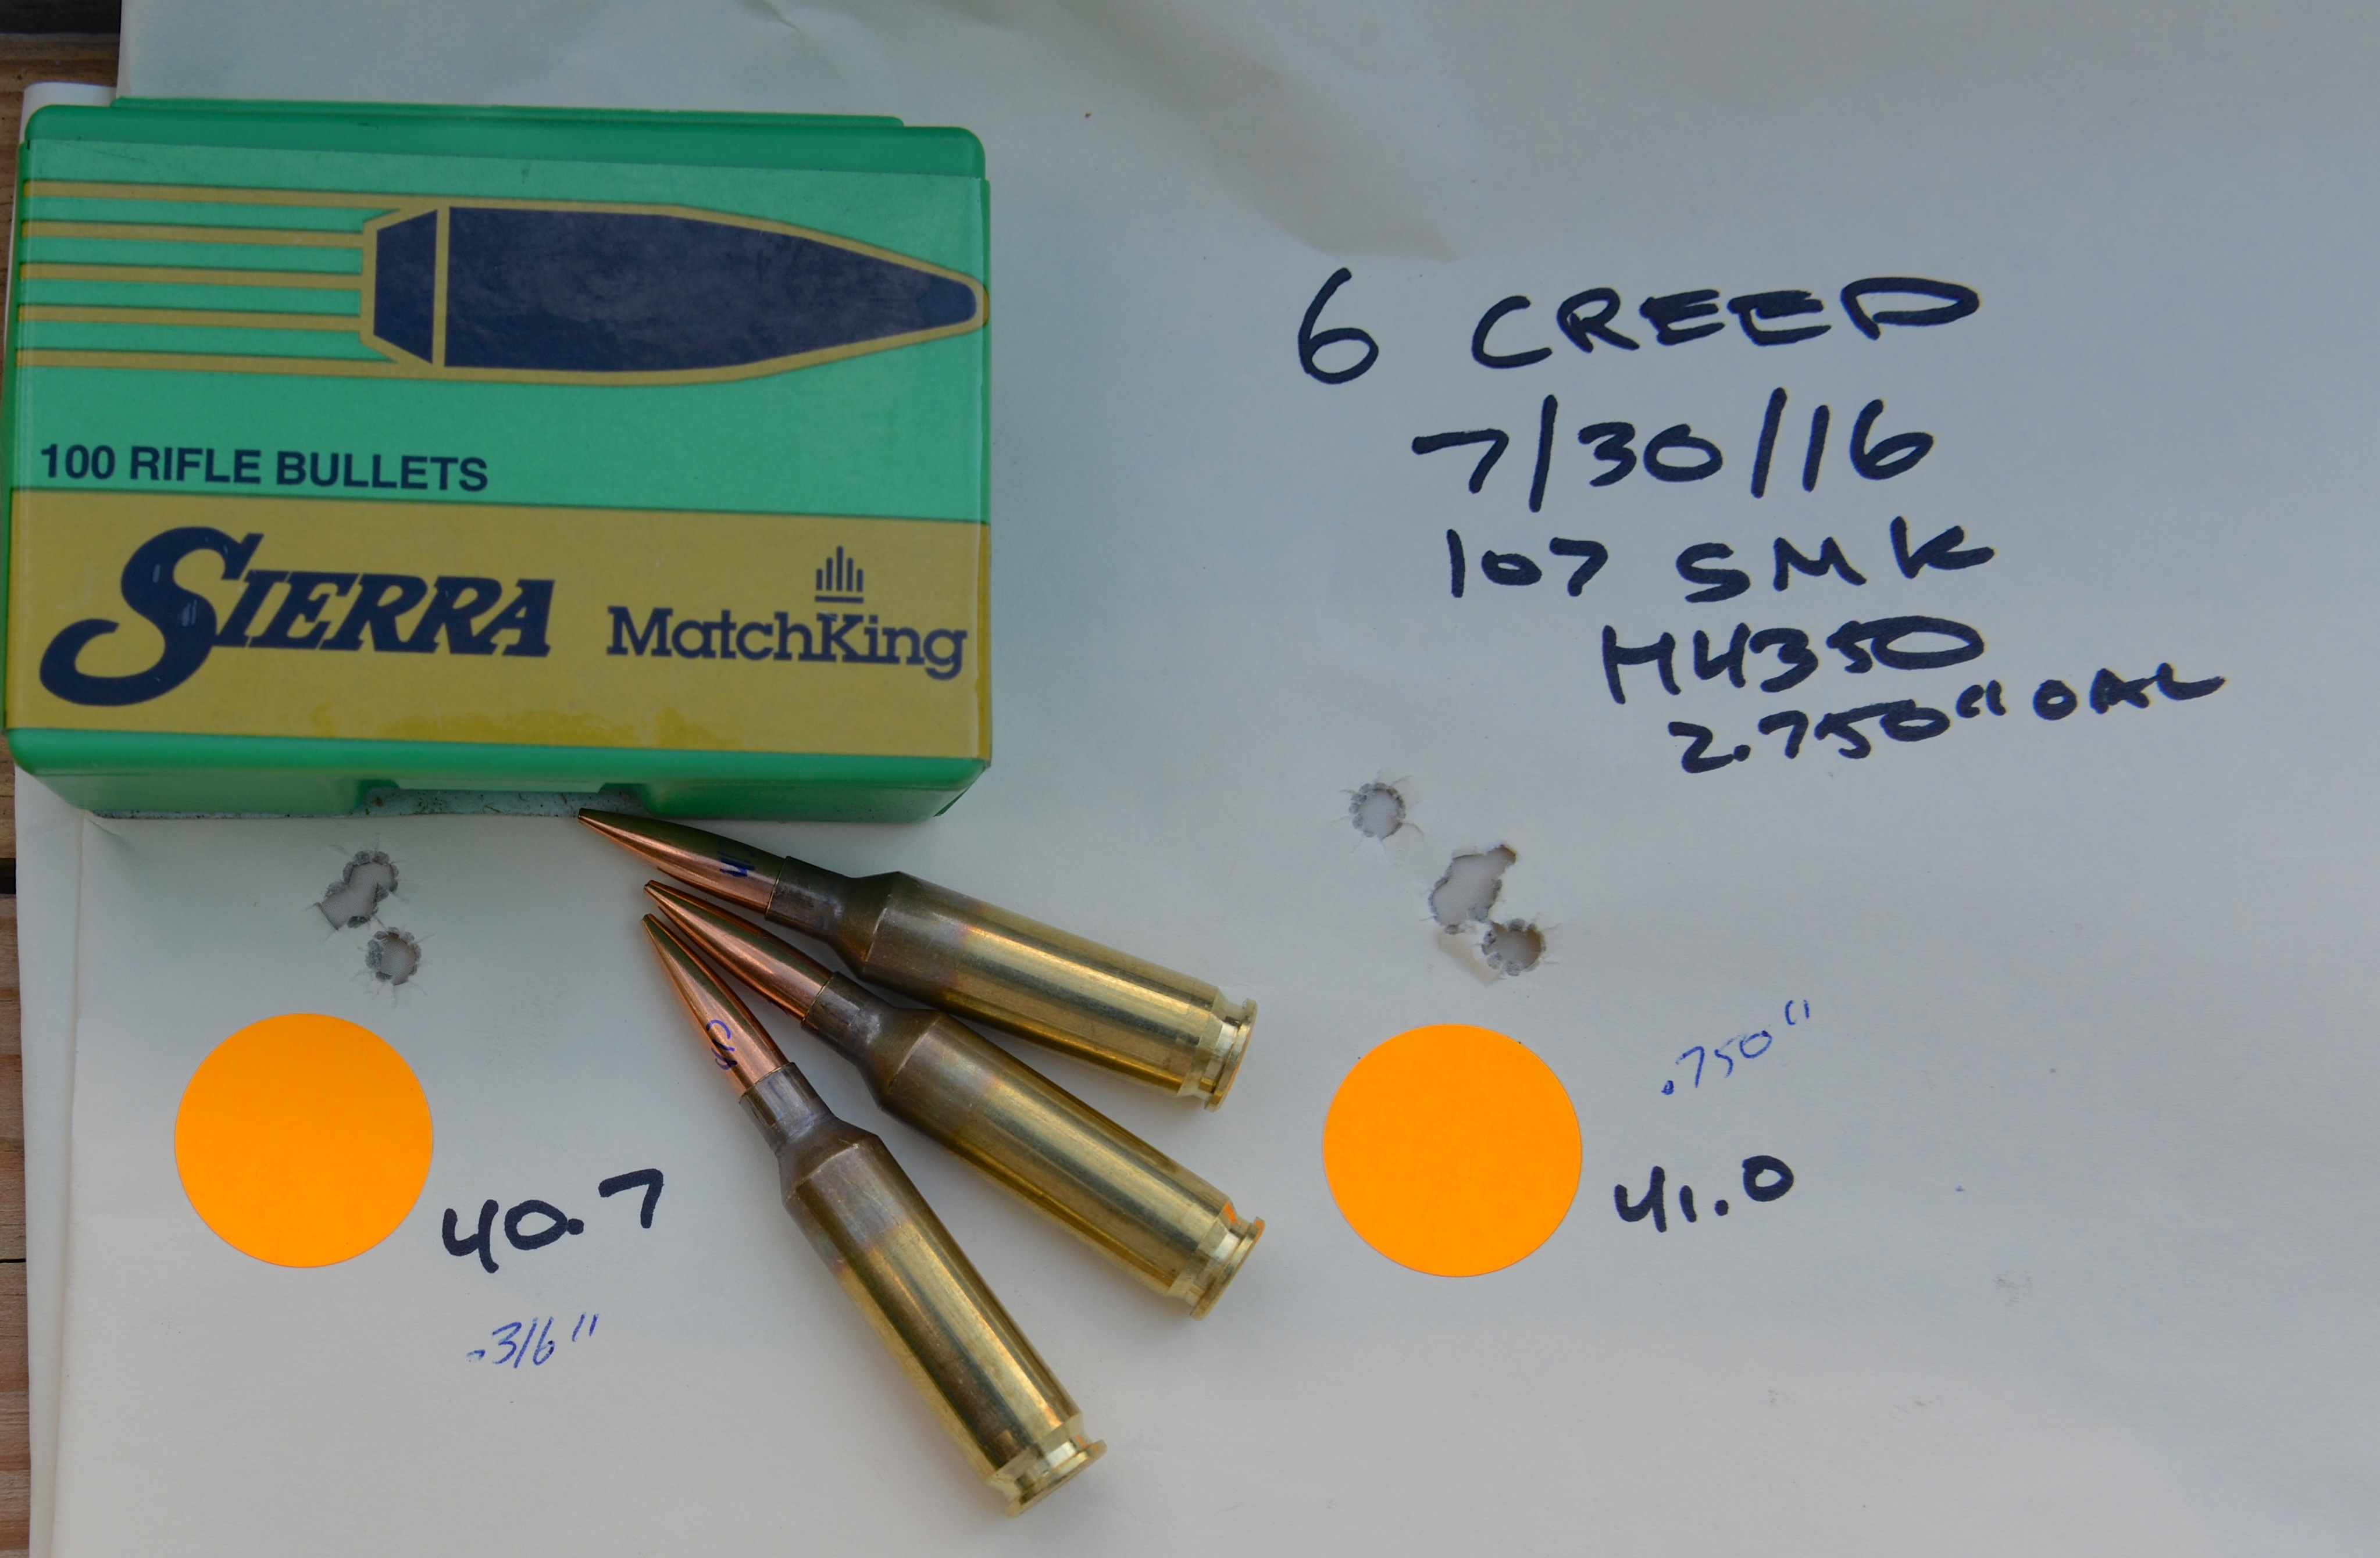 6 CREED 107 GROUP WITH BOX OF BULLETS